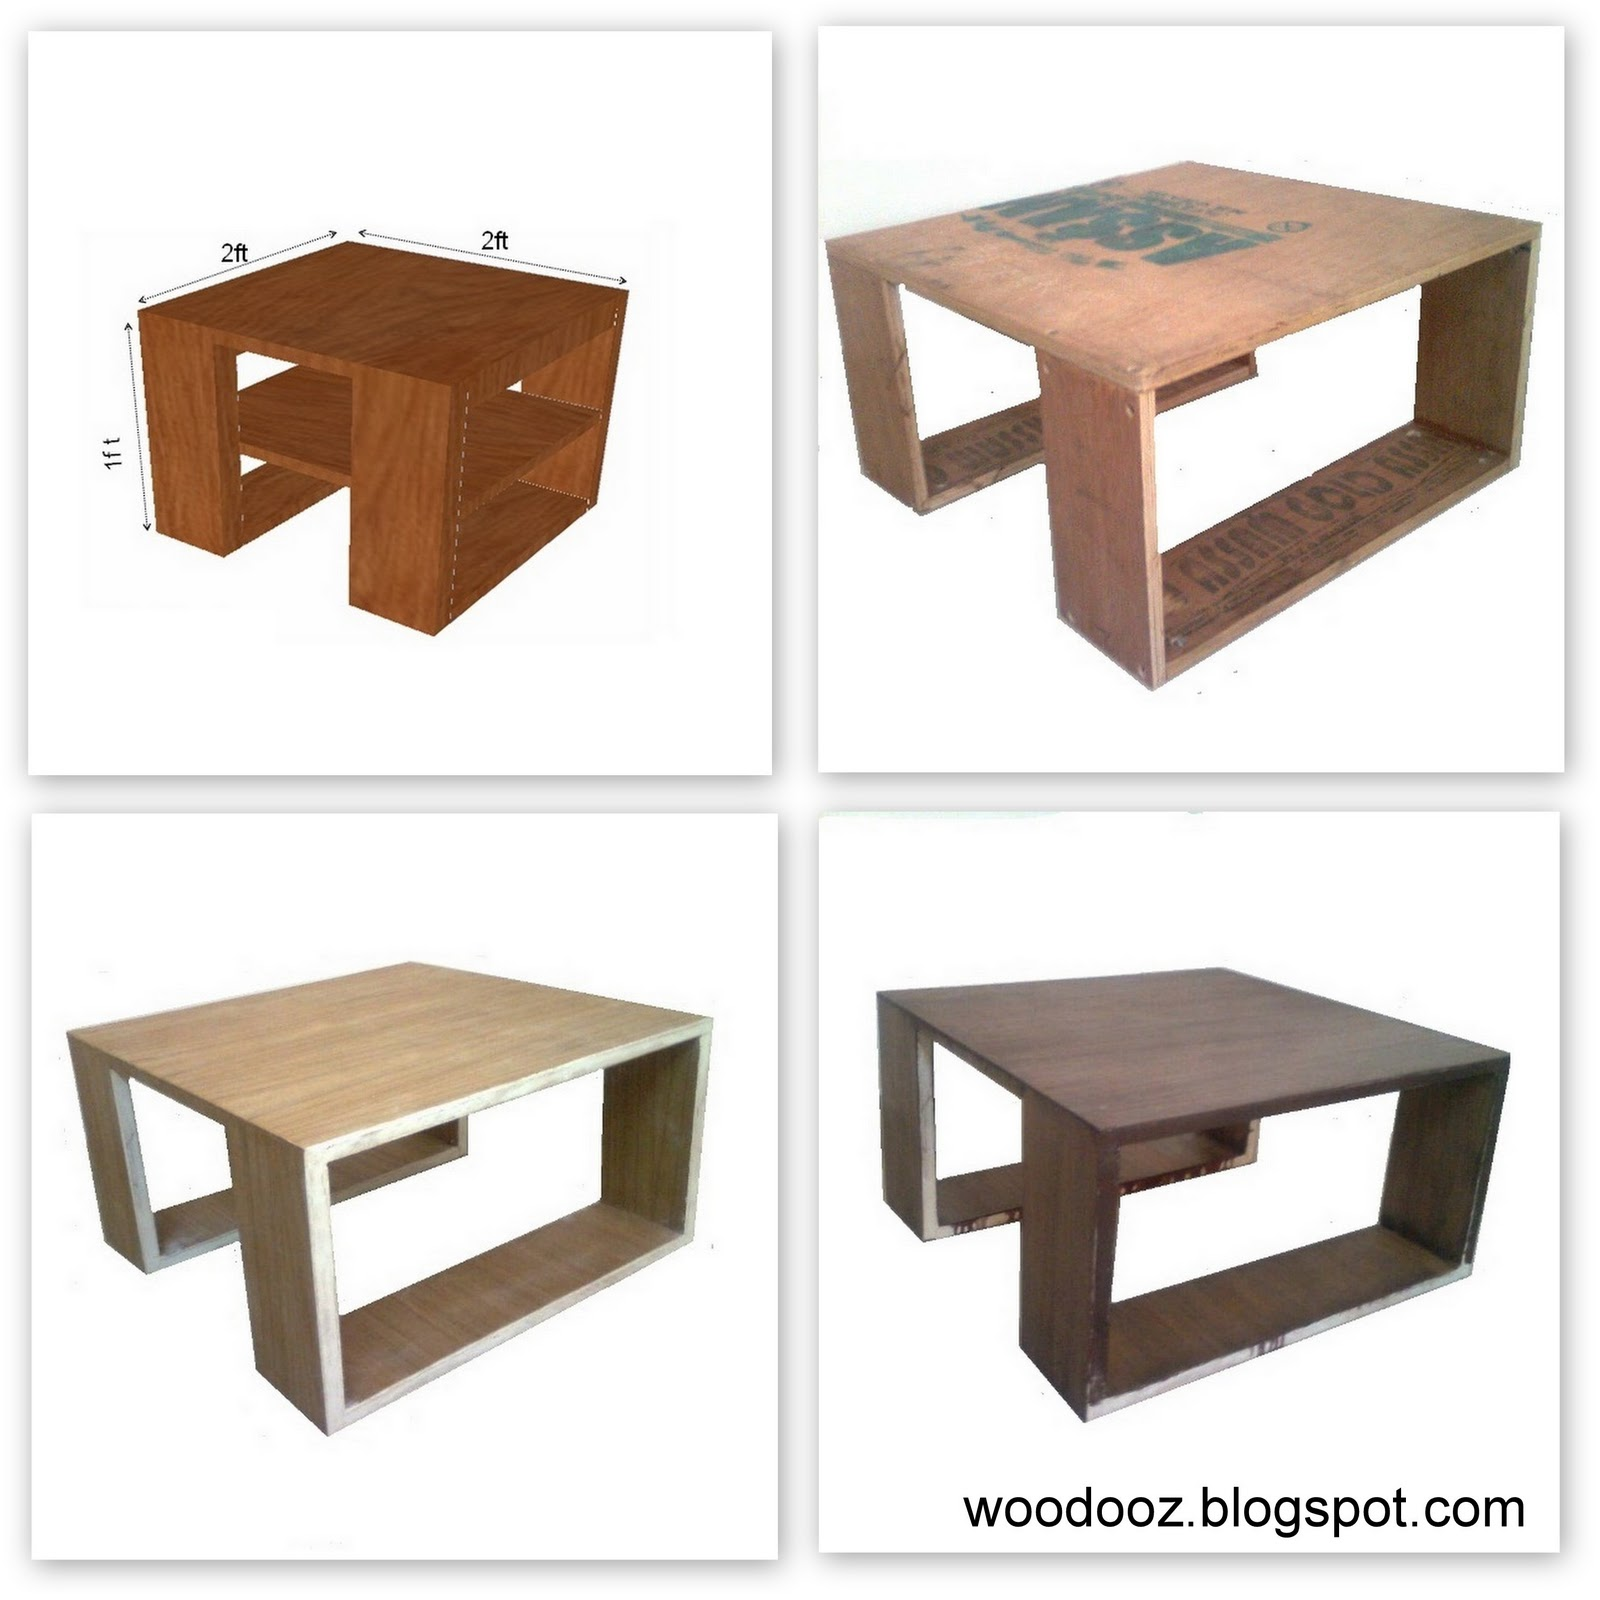 Center table design images photograph low center table c for Center table coffee table